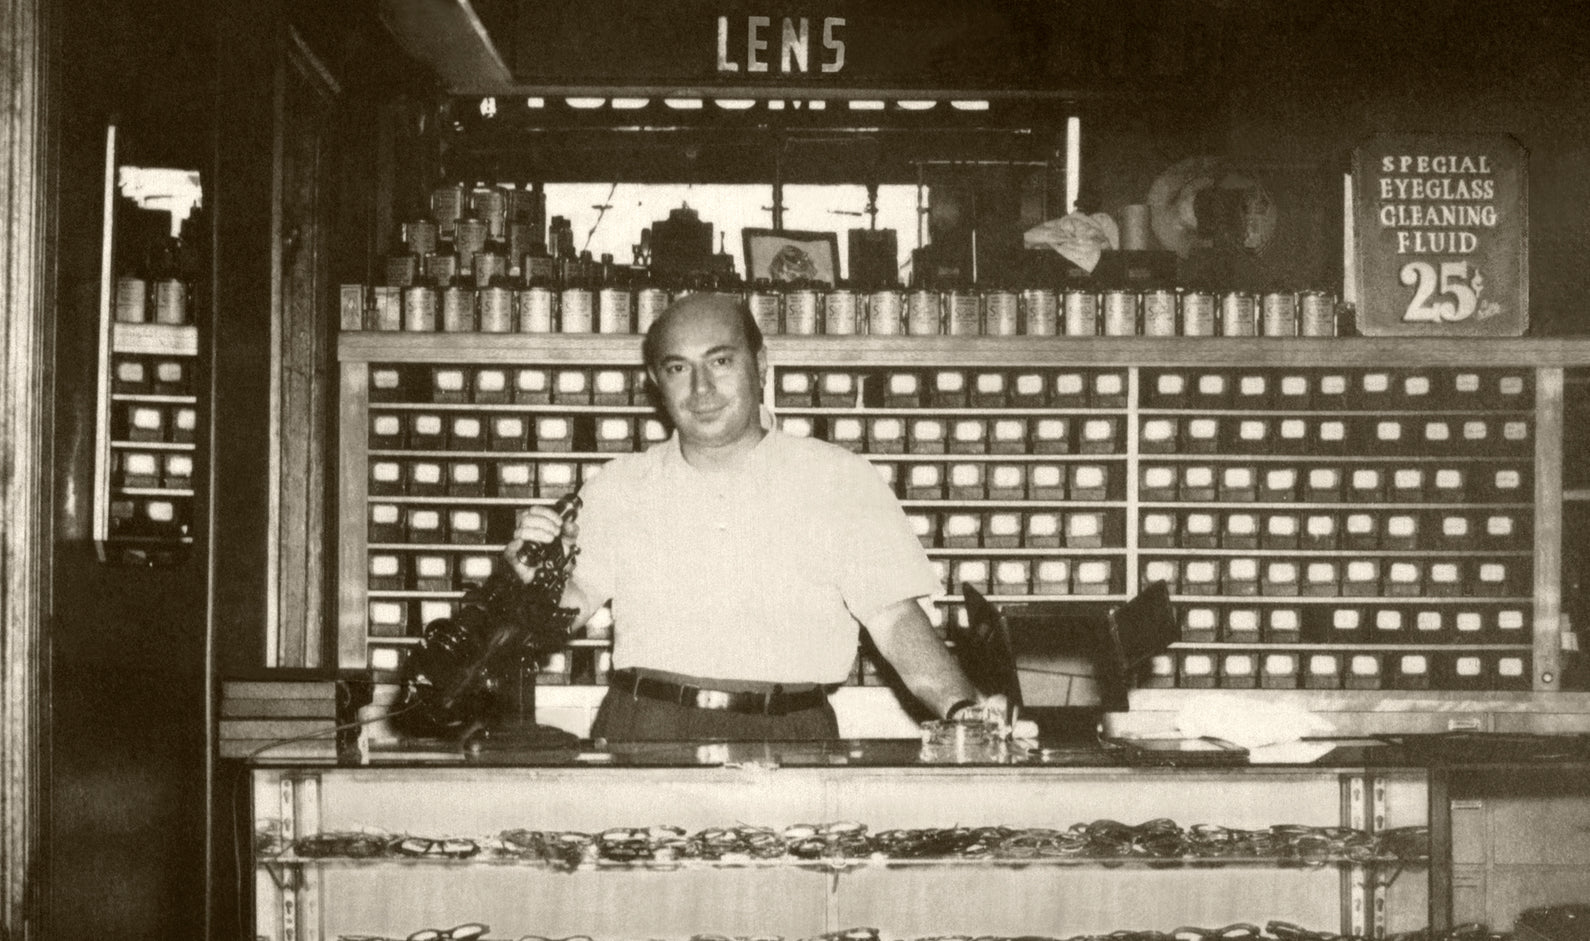 In 1925 Hyman's son Sol, at the tender age of only 15, joined the family business and helped take over the reins.